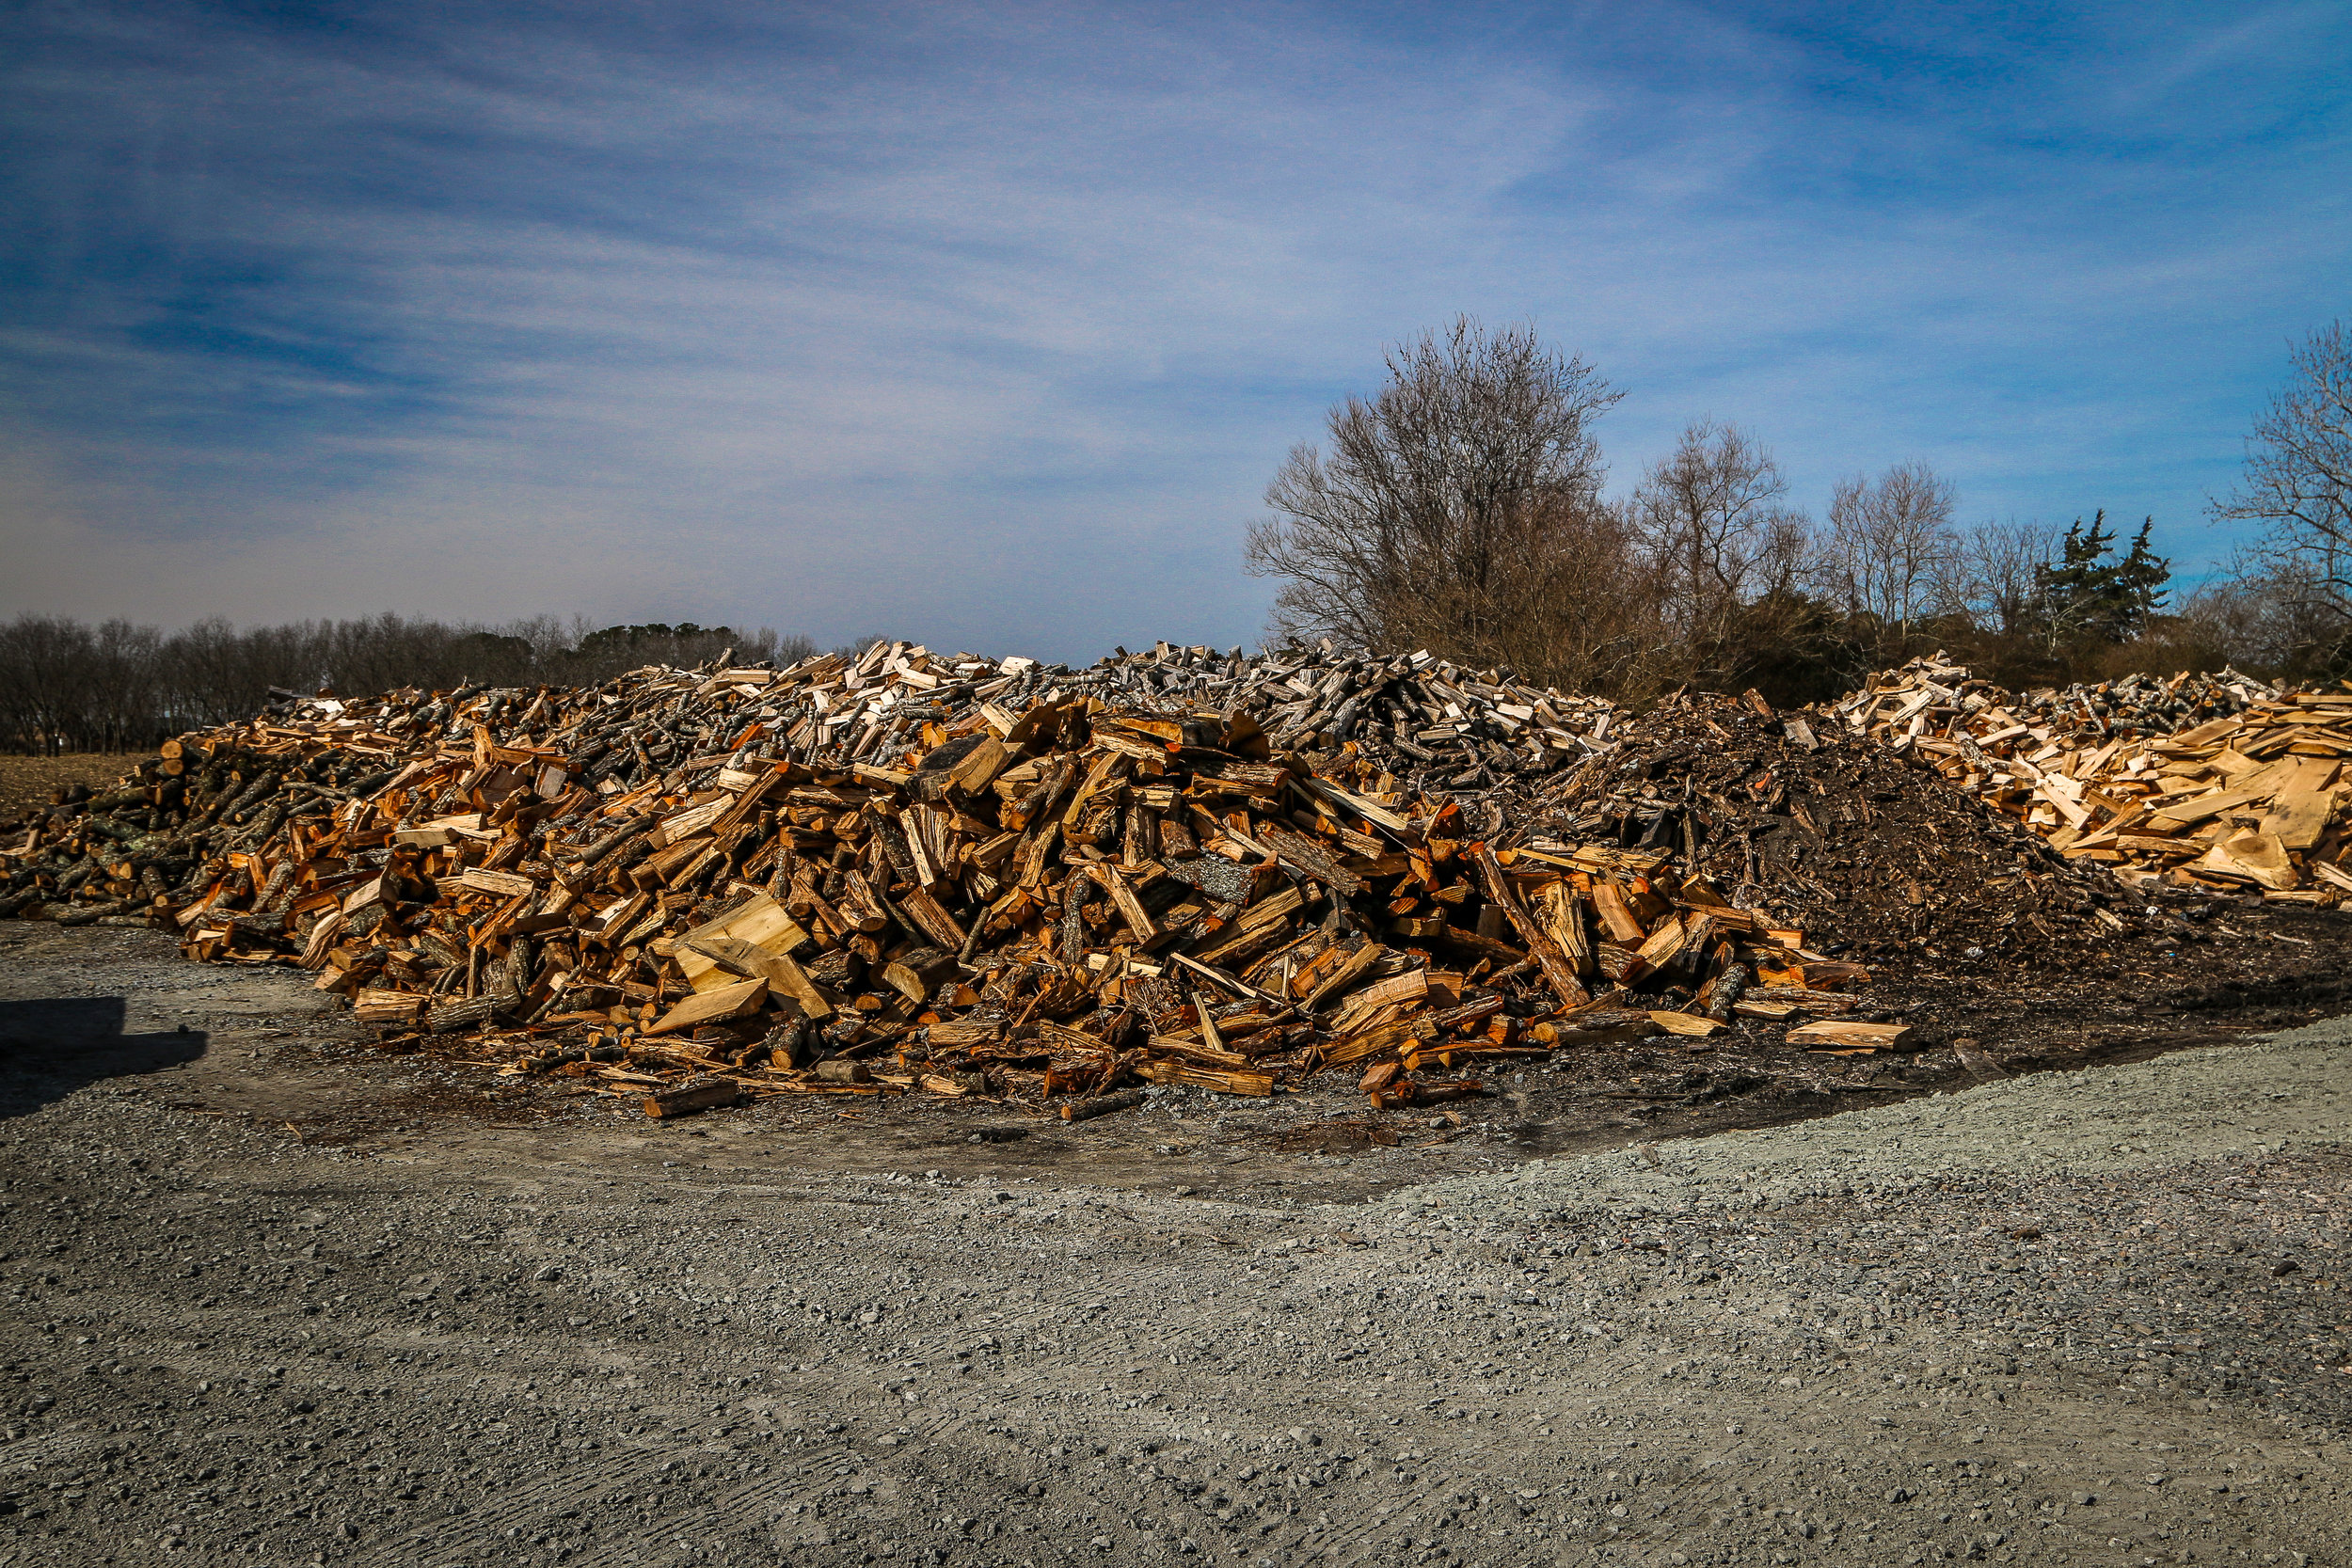 Piles and Piles of Wood